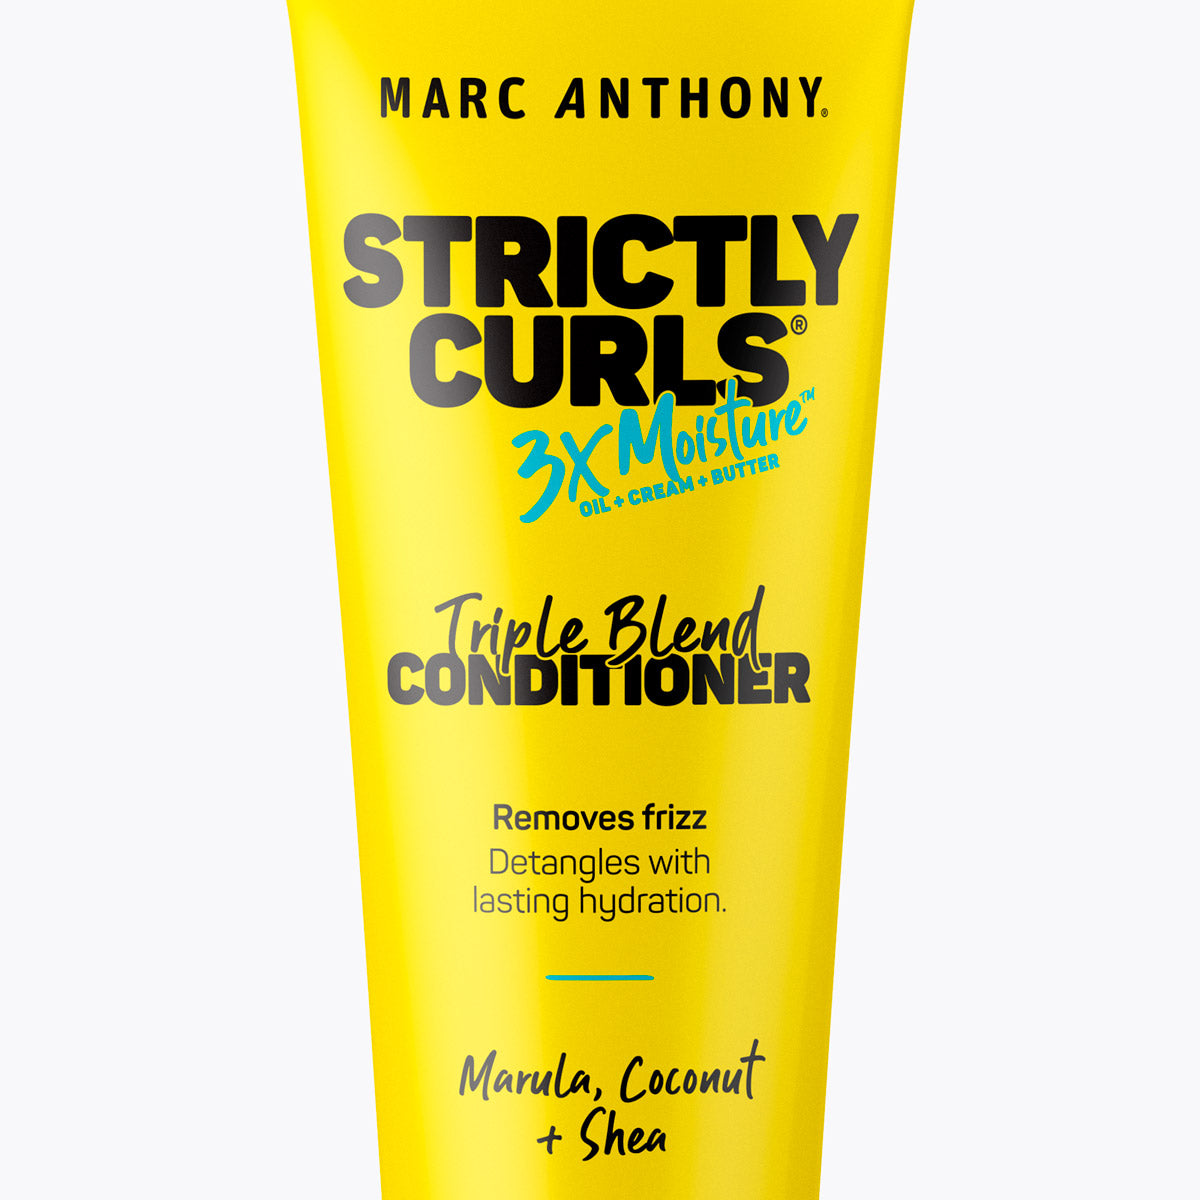 Strictly Curls® 3X Moisture <br> Triple Blend Conditioner